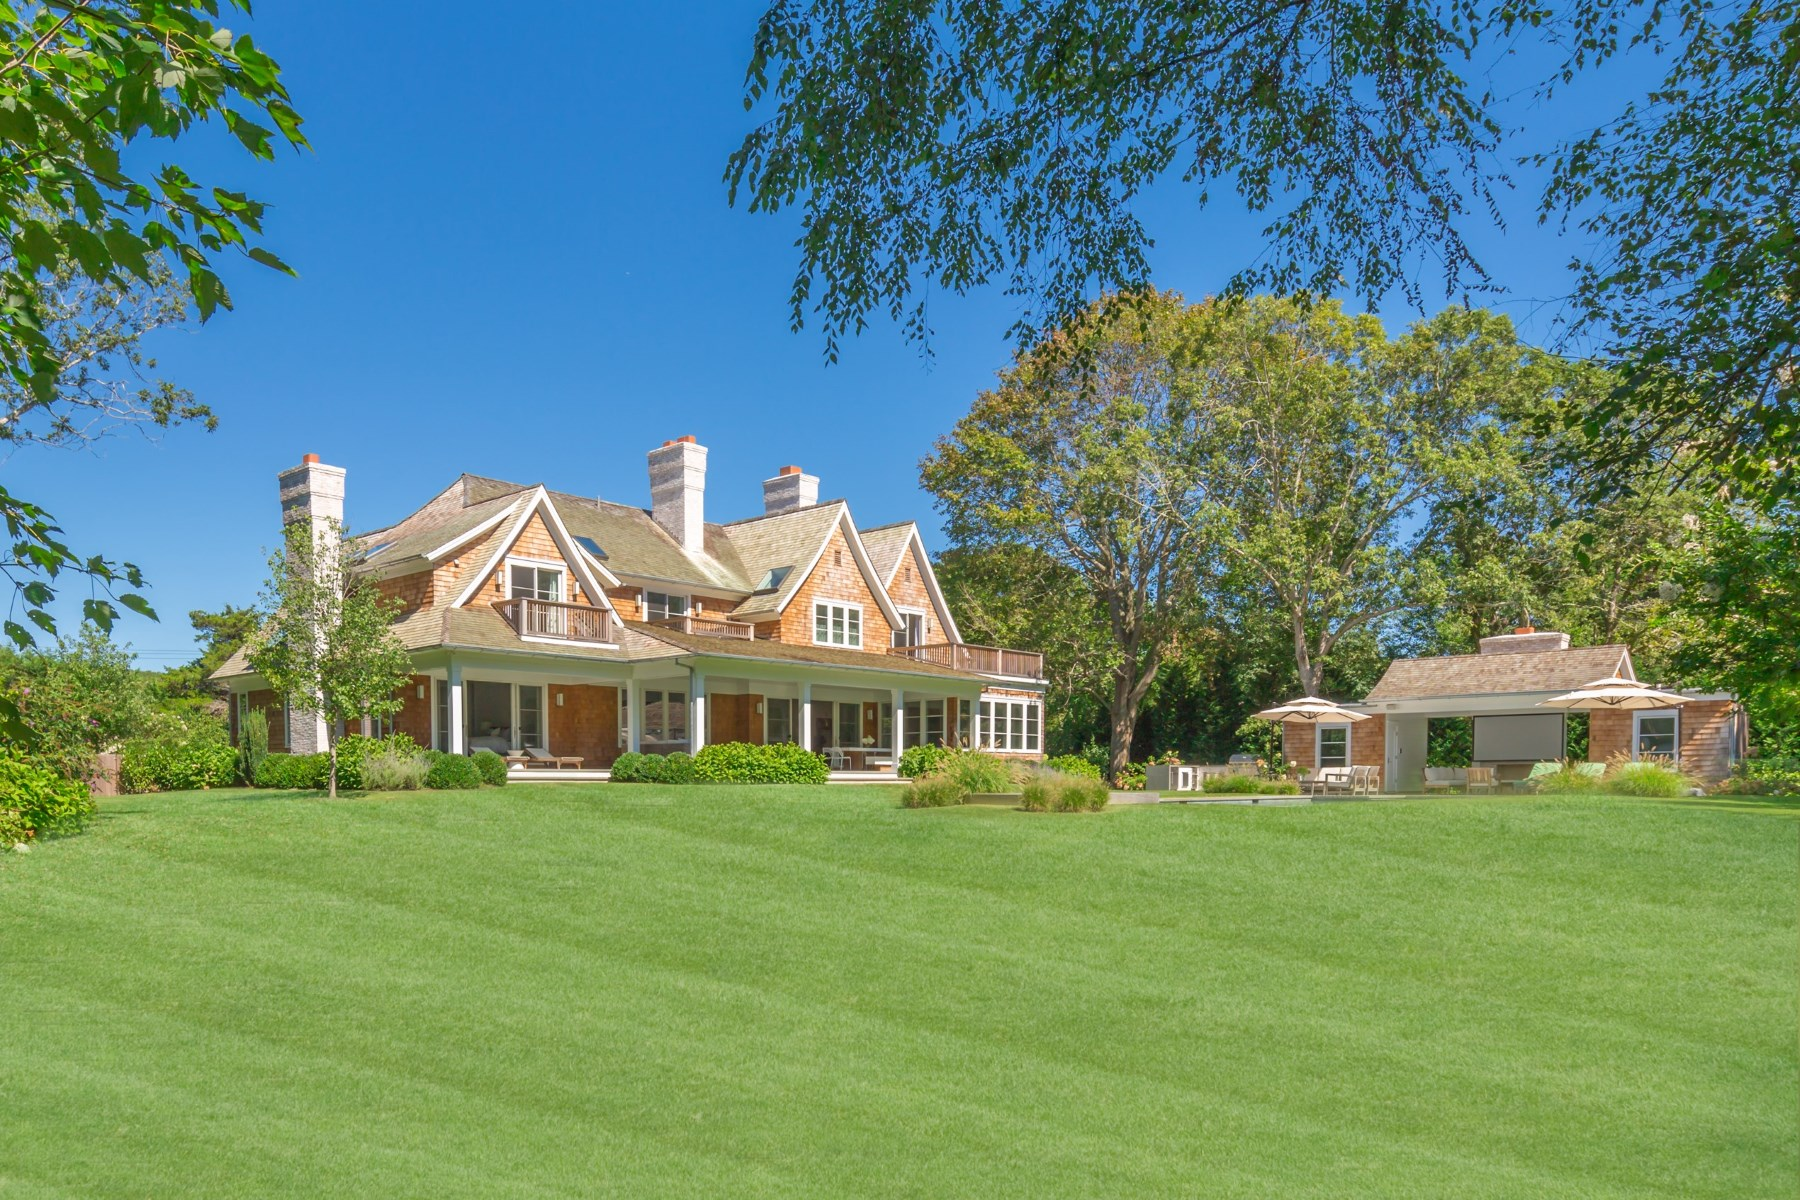 Single Family Home for Sale at Georgica Designer's Own New Construction 200 Georgica Road East Hampton, New York, 11937 United States